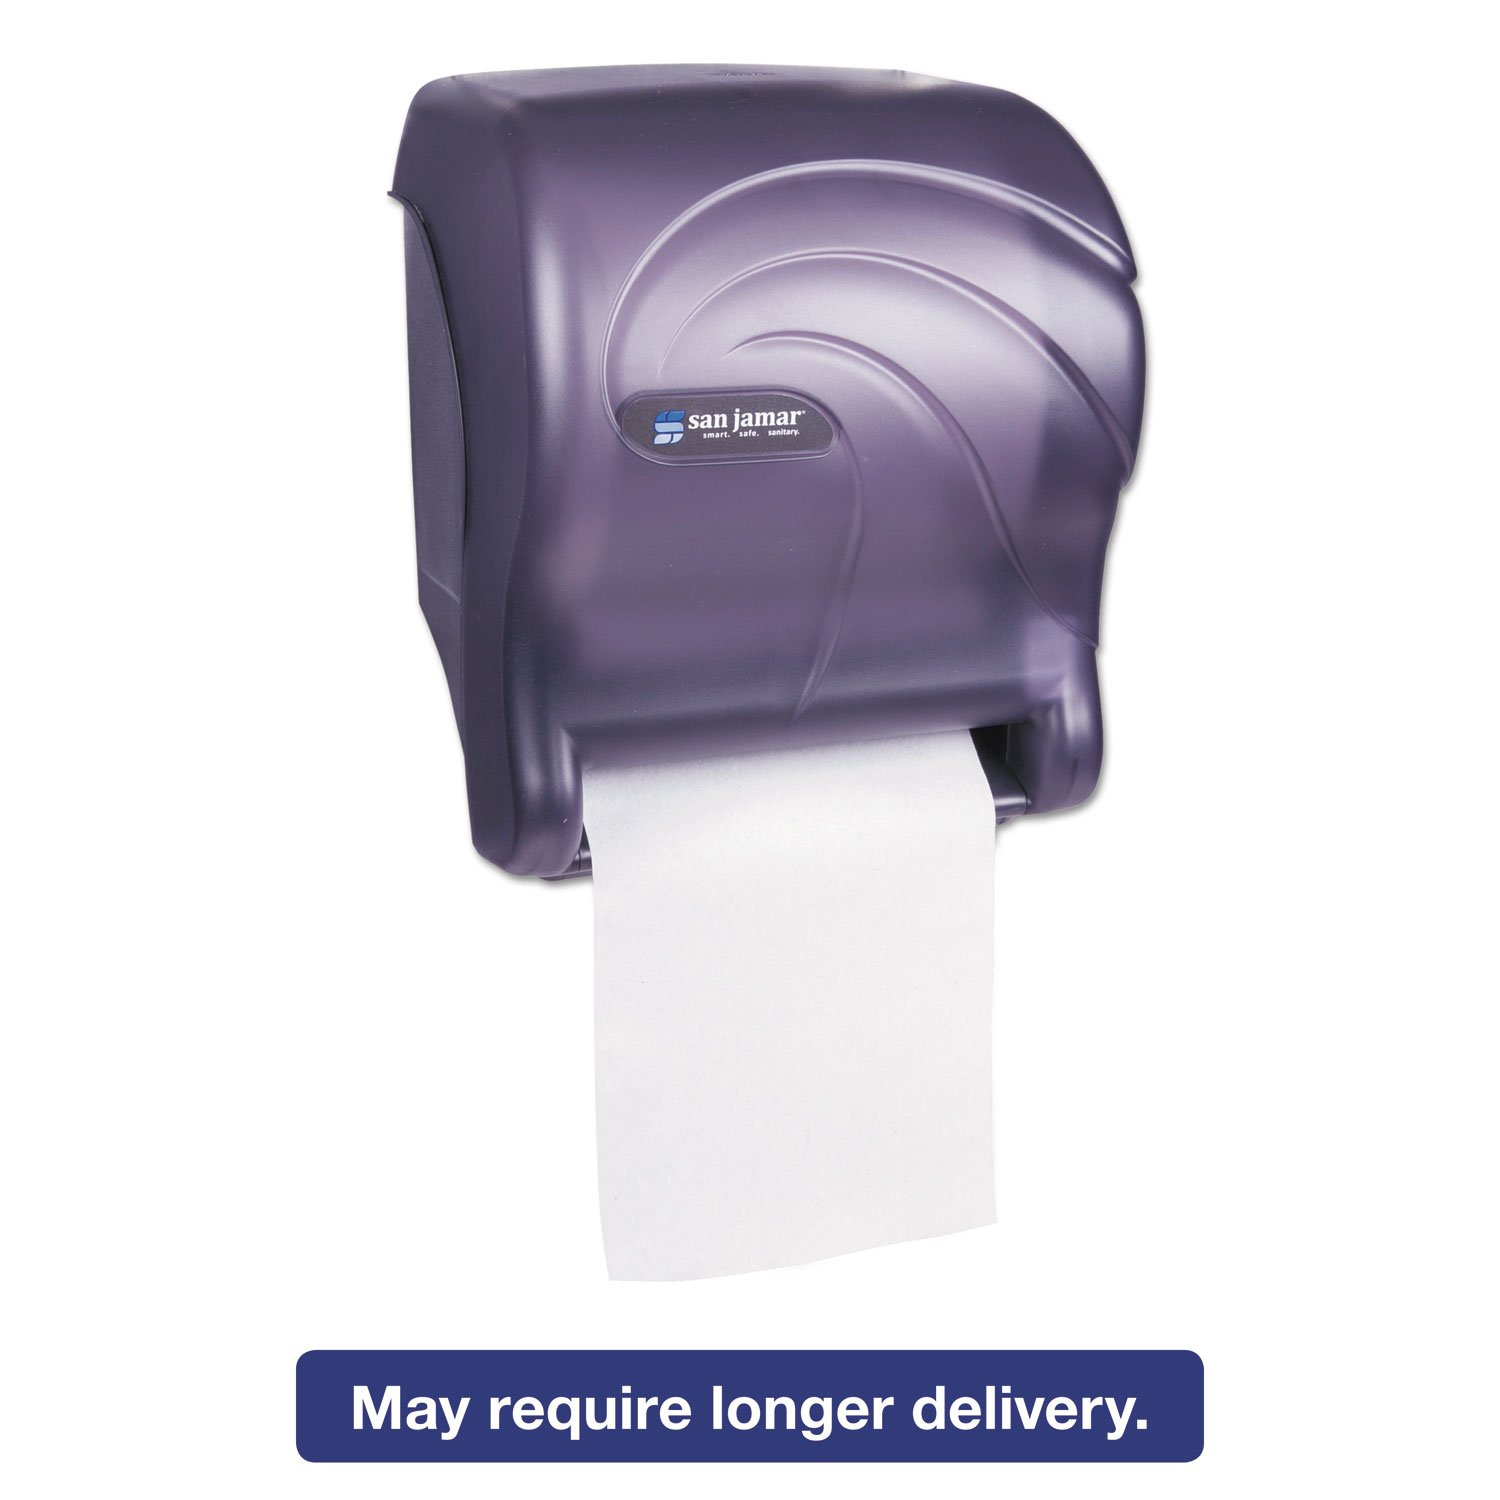 SJMT8090TBK - Tear-N-Dry Essence Touchless Towel Dispenser by Xcdiscount